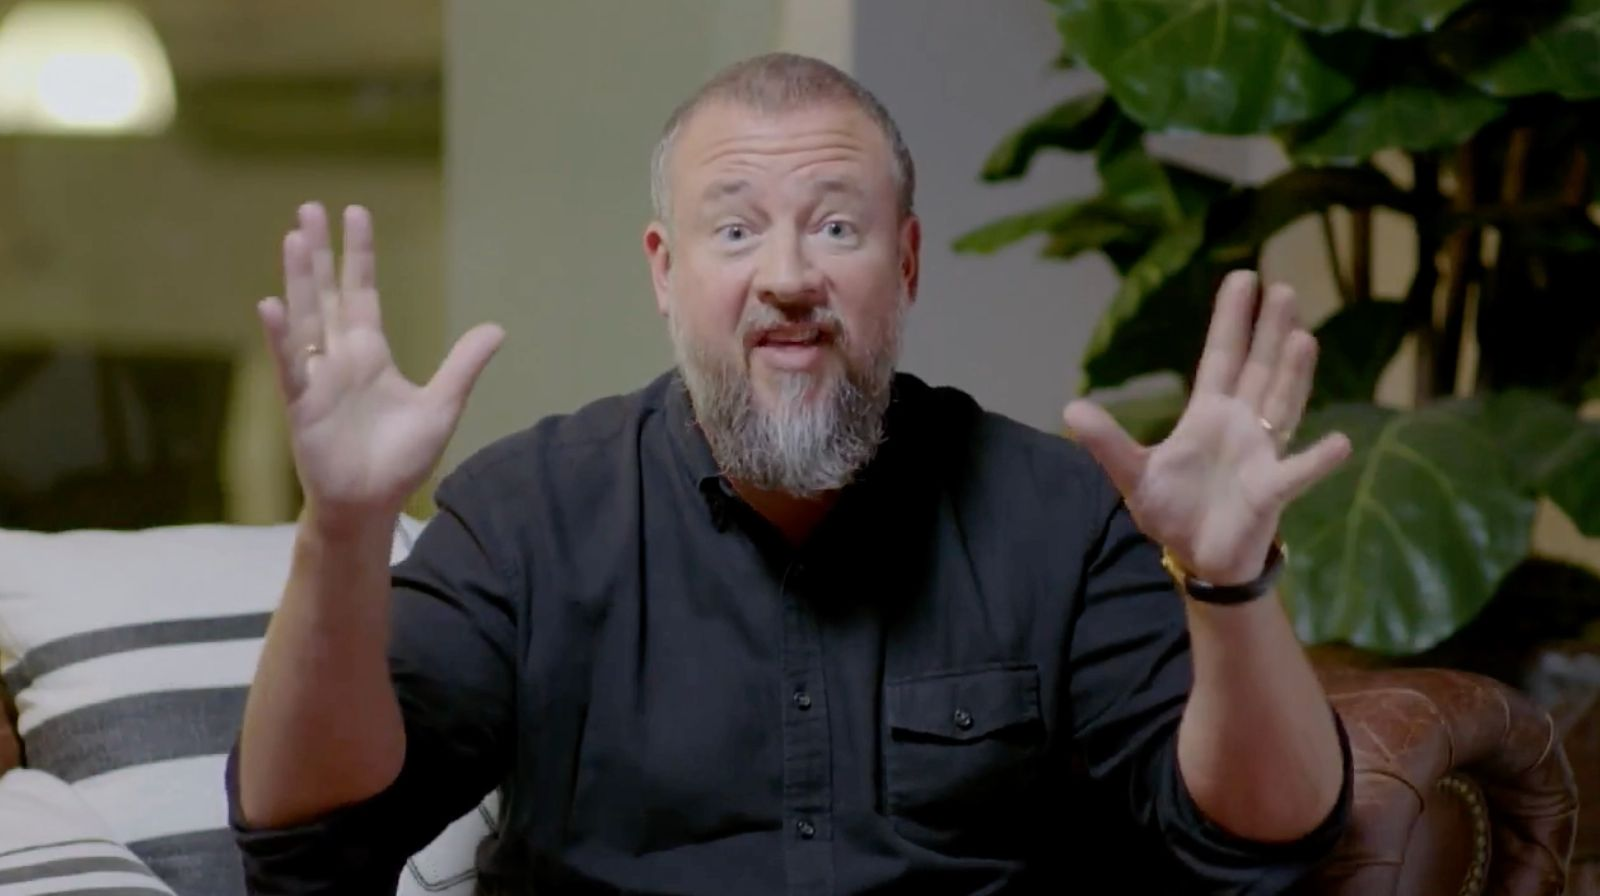 Vice CEO Shane Smith, in a video shown to employees Friday, confirms that he does, in fact, have hands.